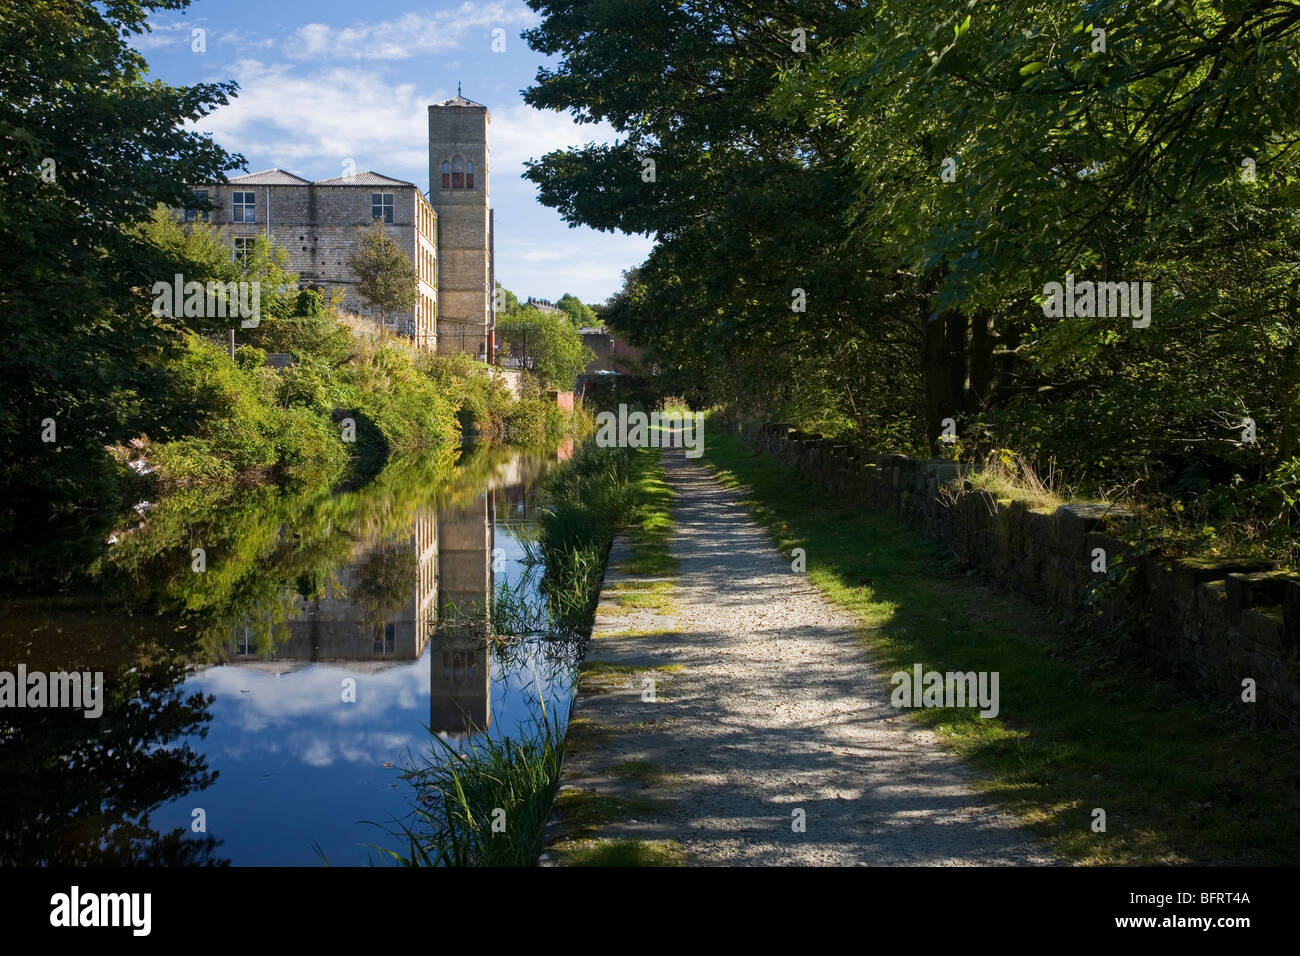 The Huddersfield Narrow Canal and old Mill building at Slaithwaite in the Colne Valley, Huddersfield, West Yorkshire, - Stock Image